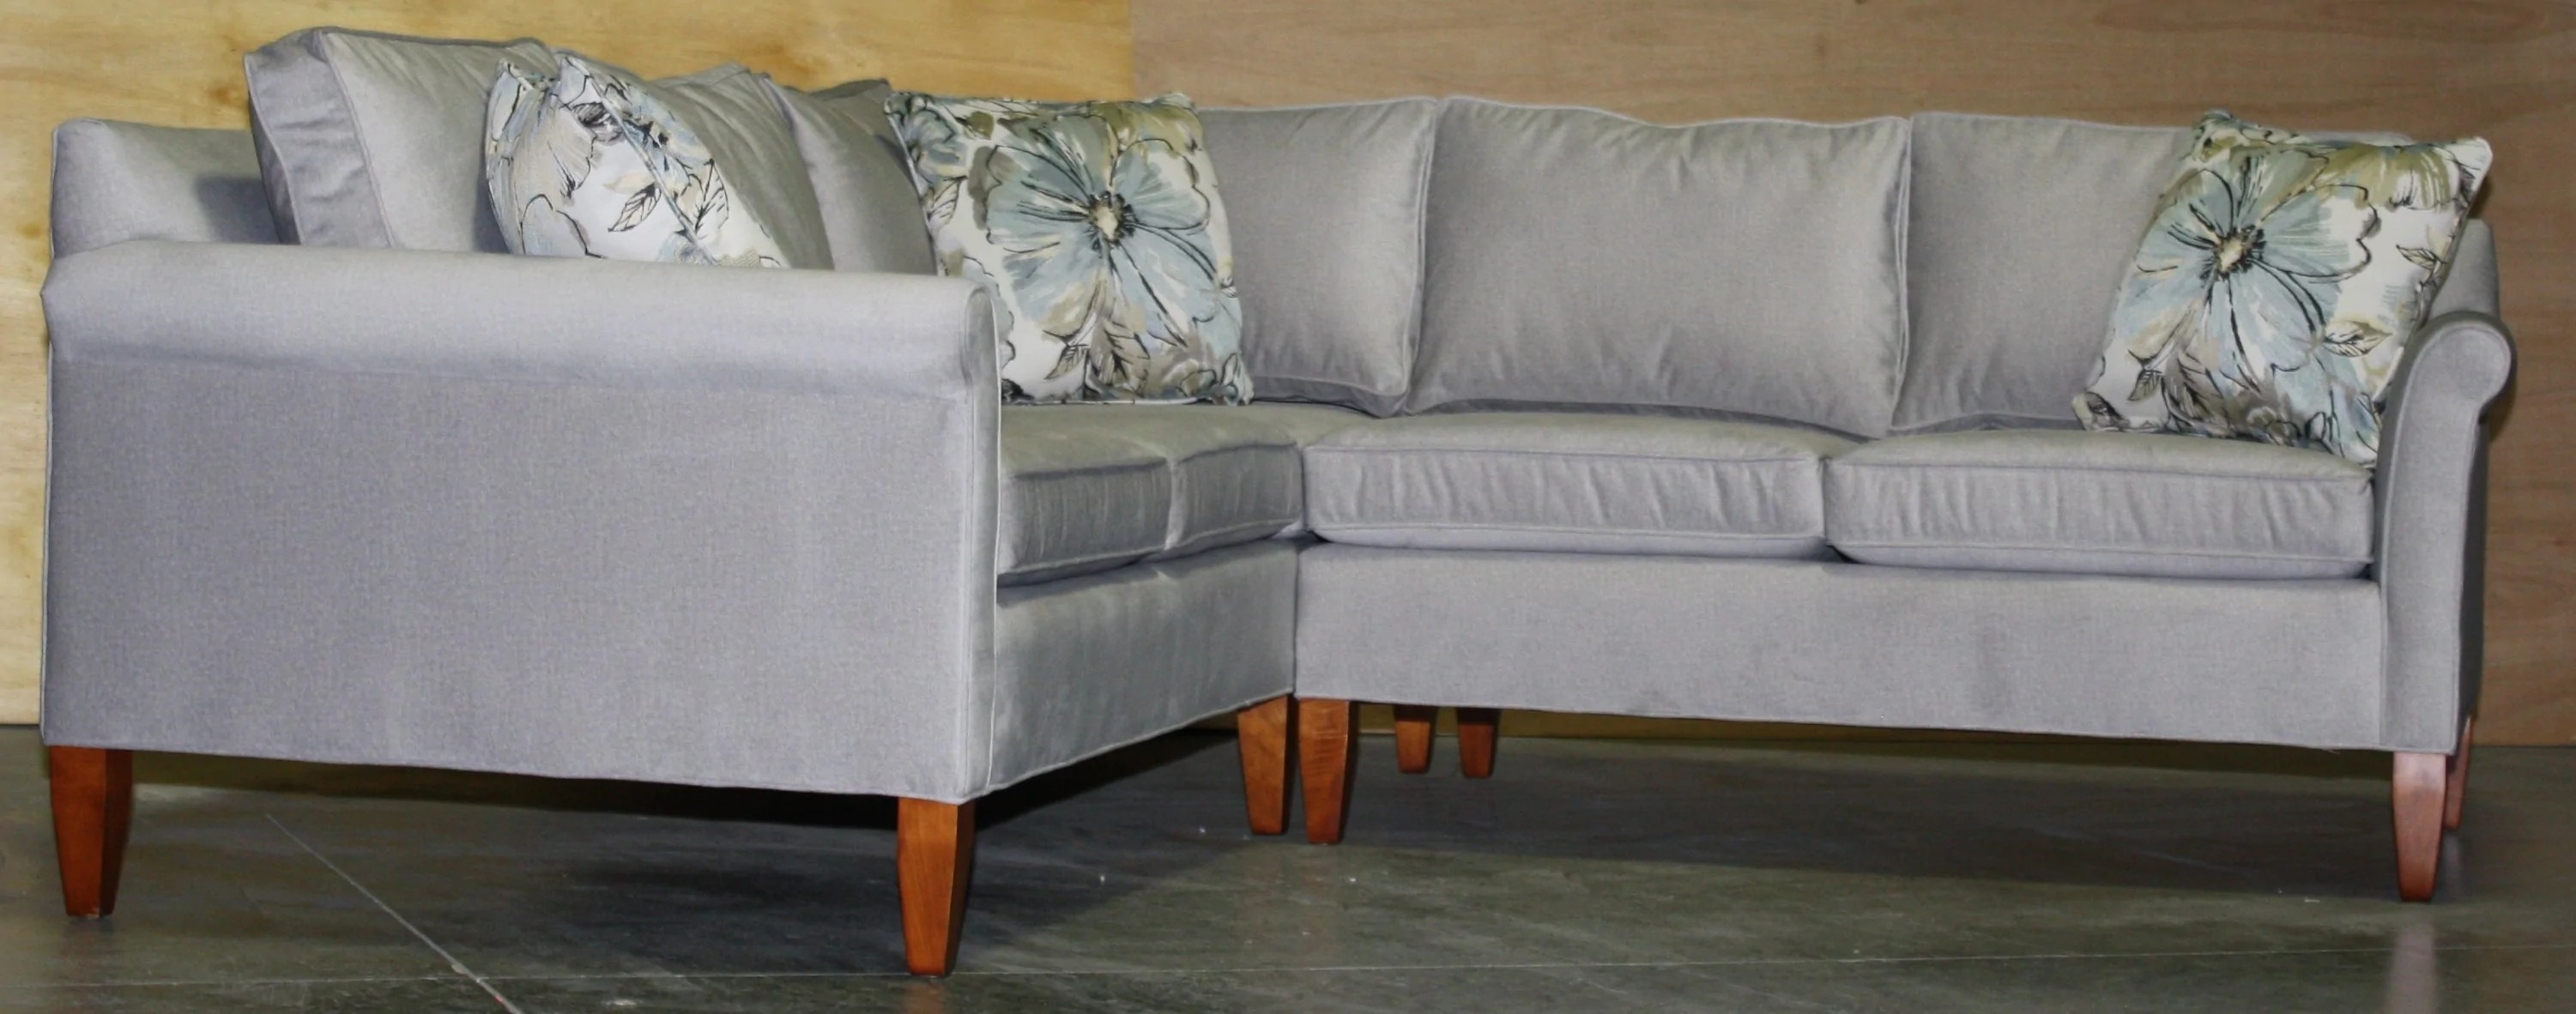 Otto Sale Sofa New Otto Non Toxic Condo Sectional For Smaller Spaces Showroom